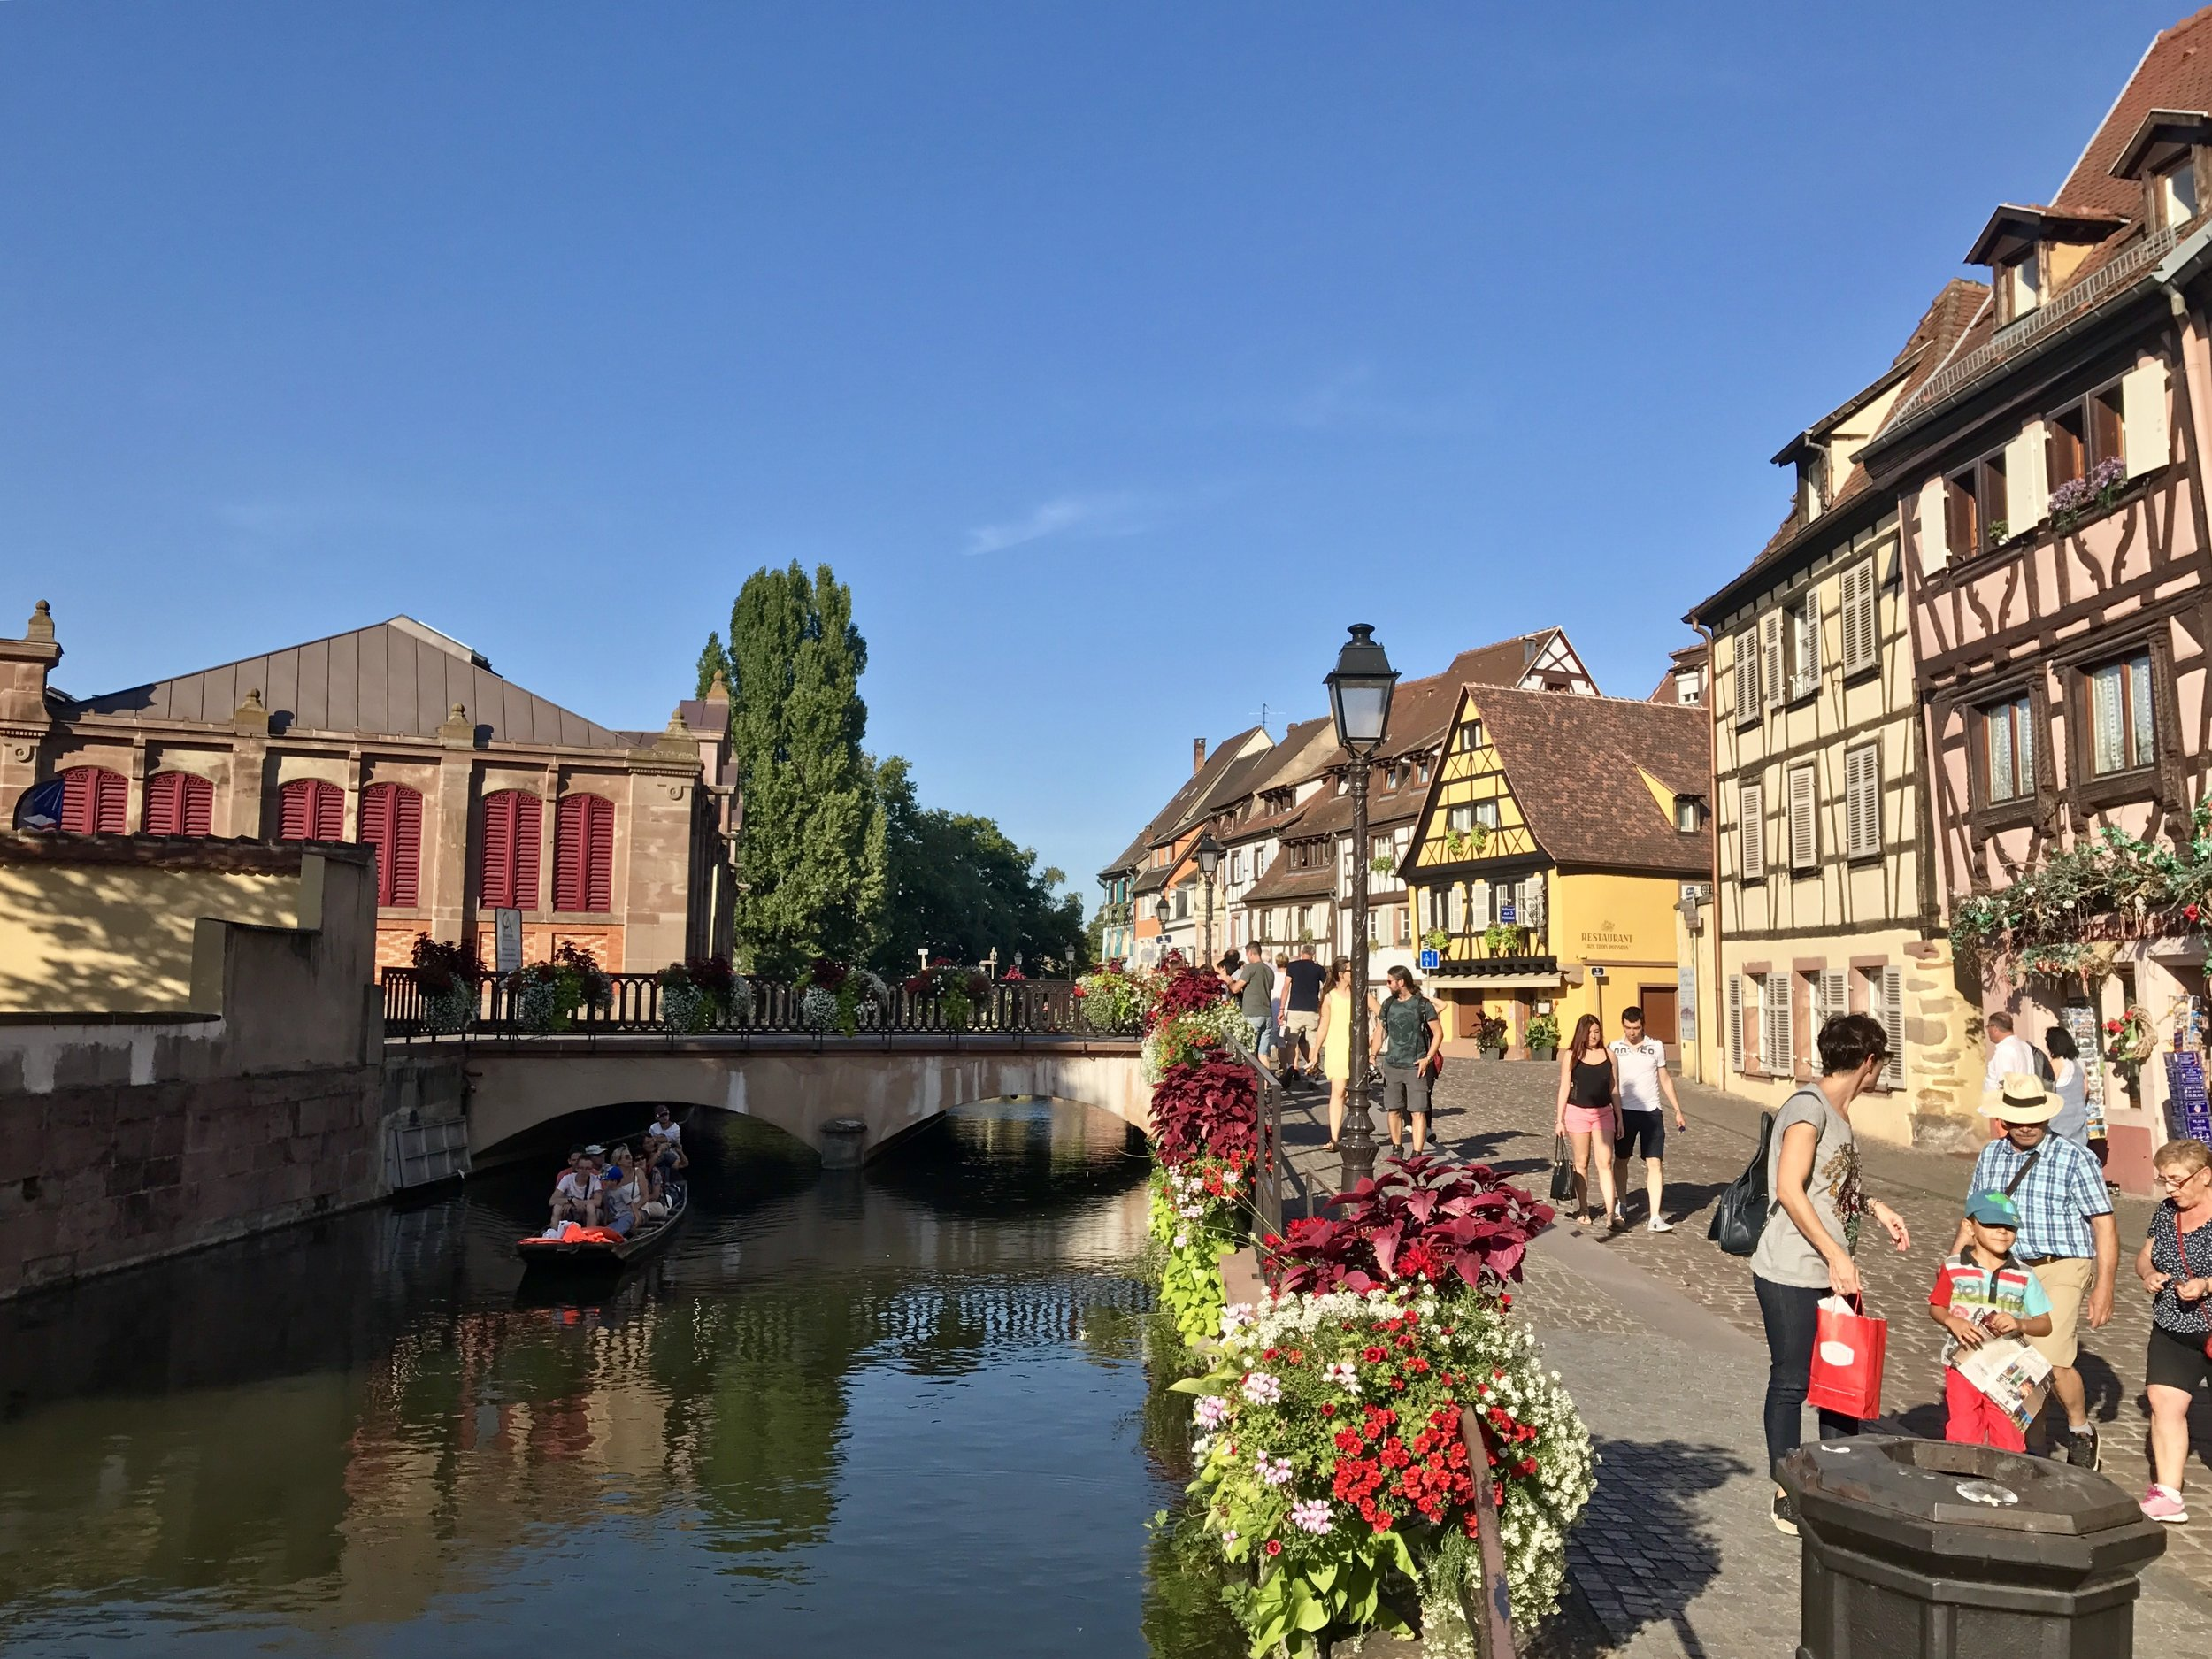 The town of Colmar where Nicole and I stayed in Alsace